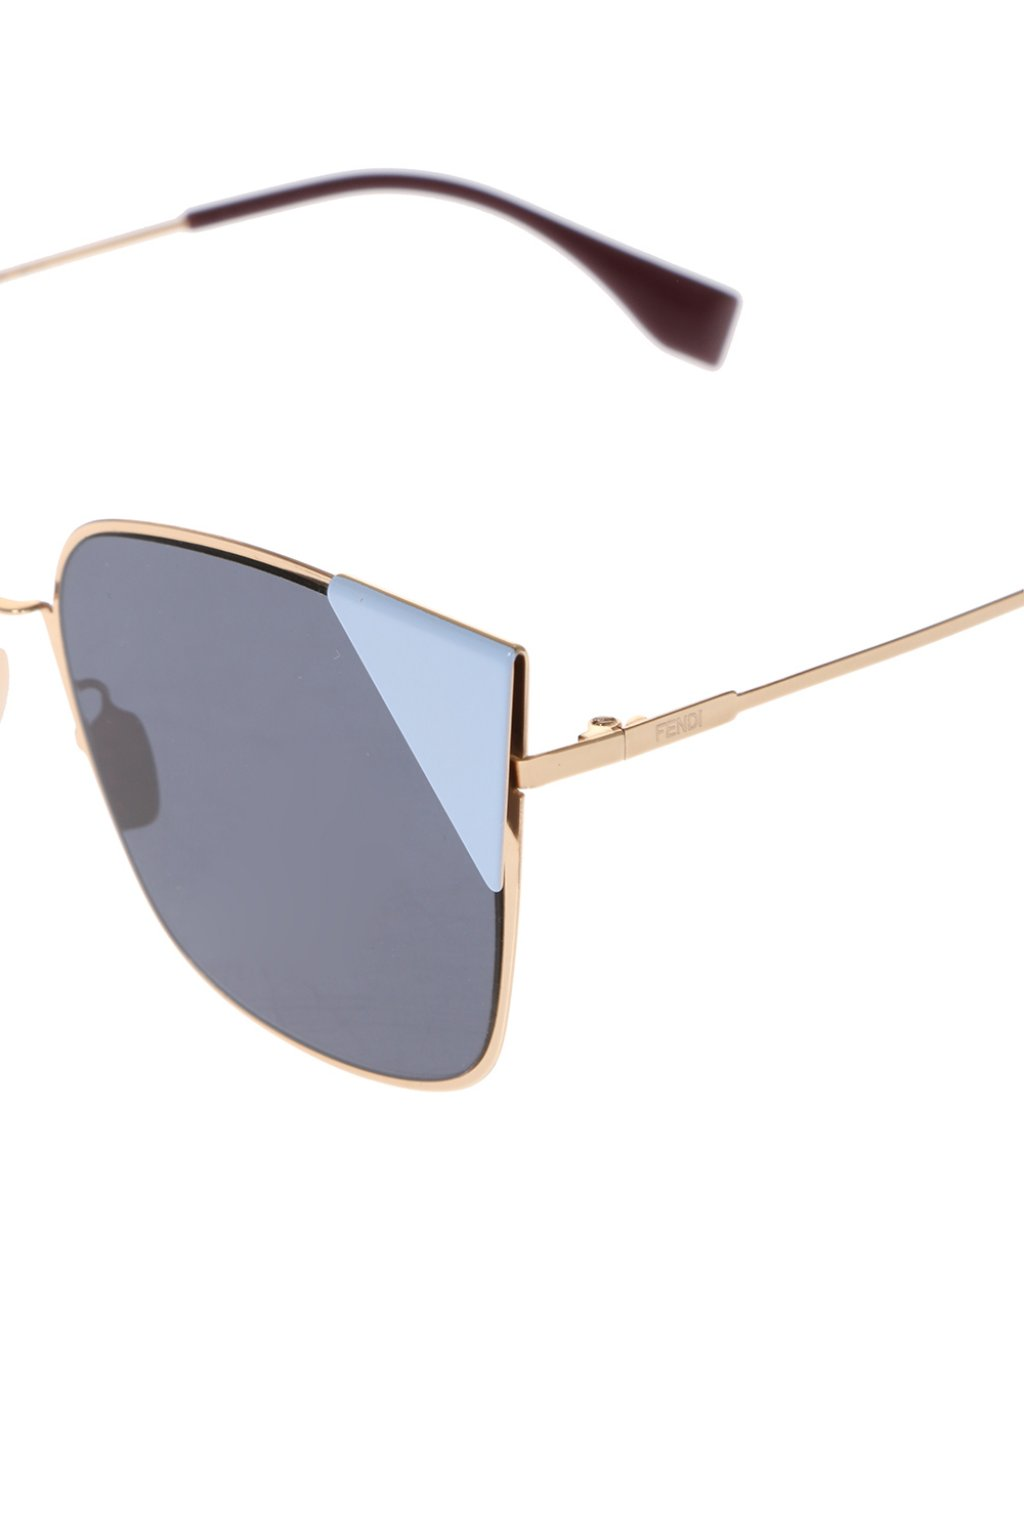 Fendi 'Lei' sunglasses